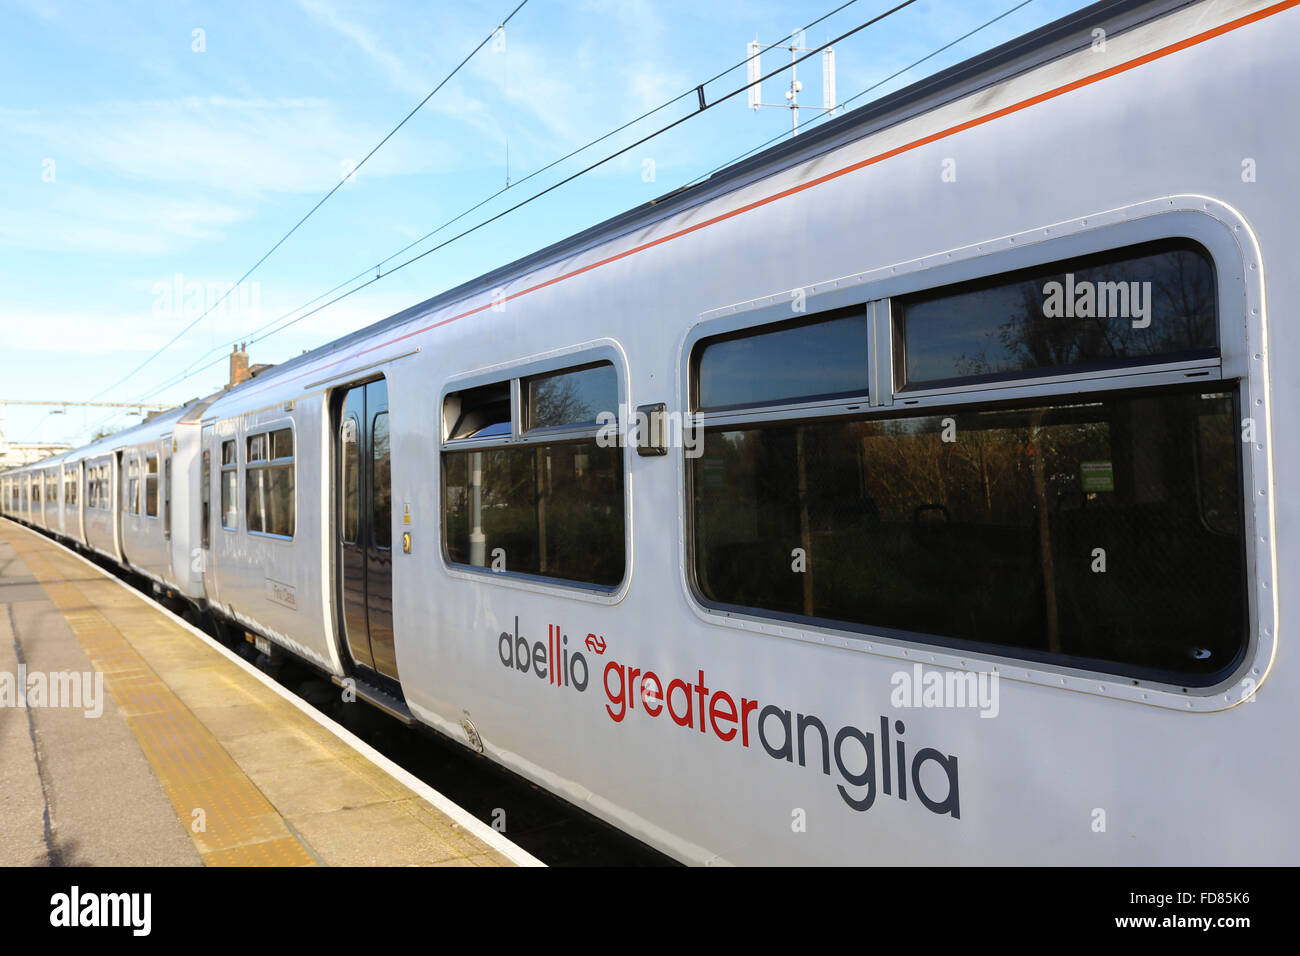 Abellio Greater Anglia train on the platform at Prittlewell Essex AGA Stock Photo